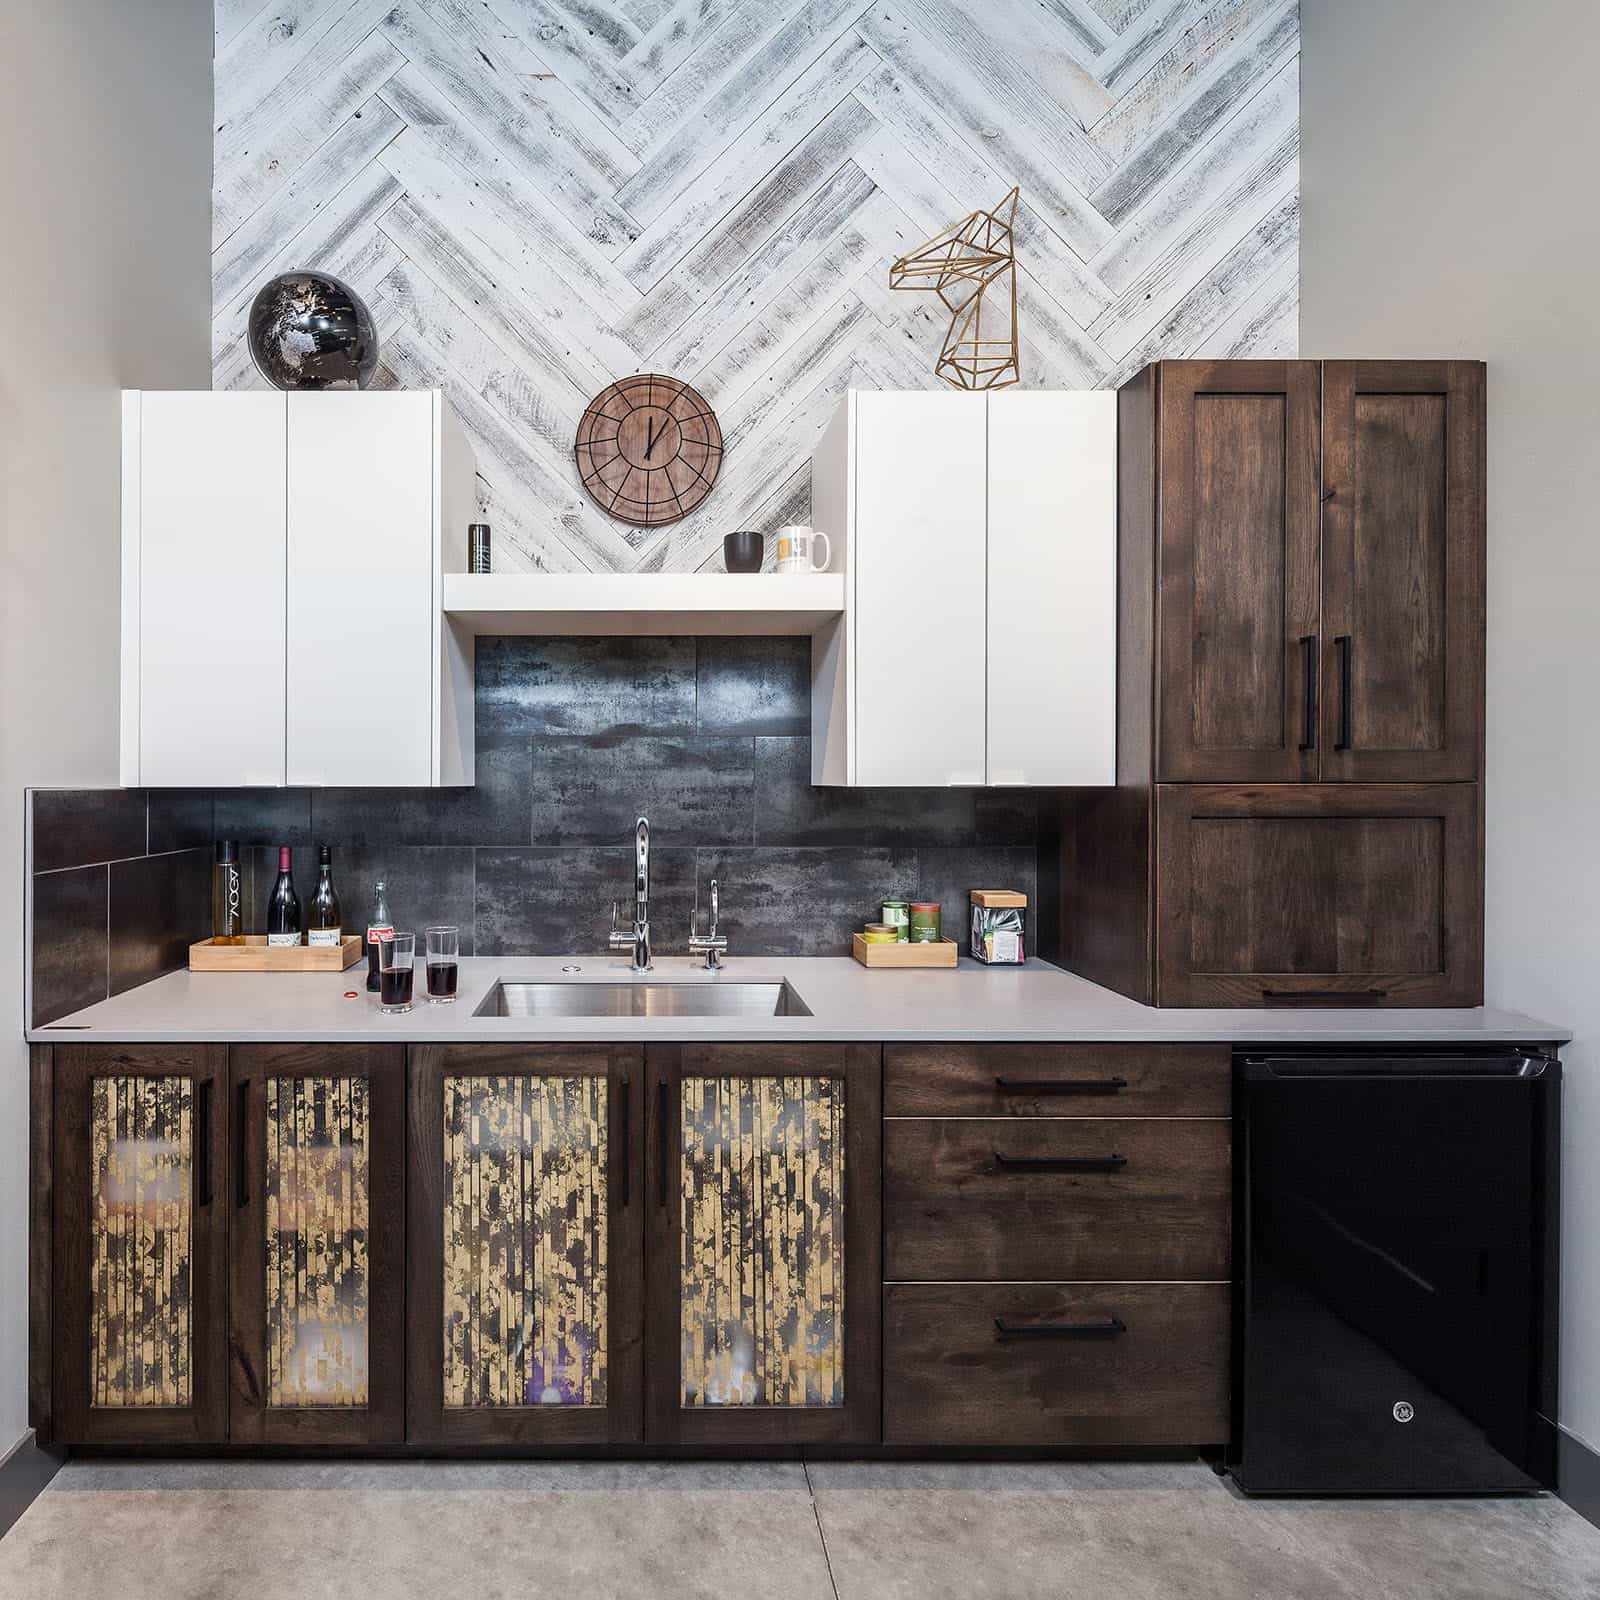 Featured Image of Stylish Wet Bar With Flat And Wood Cabinets